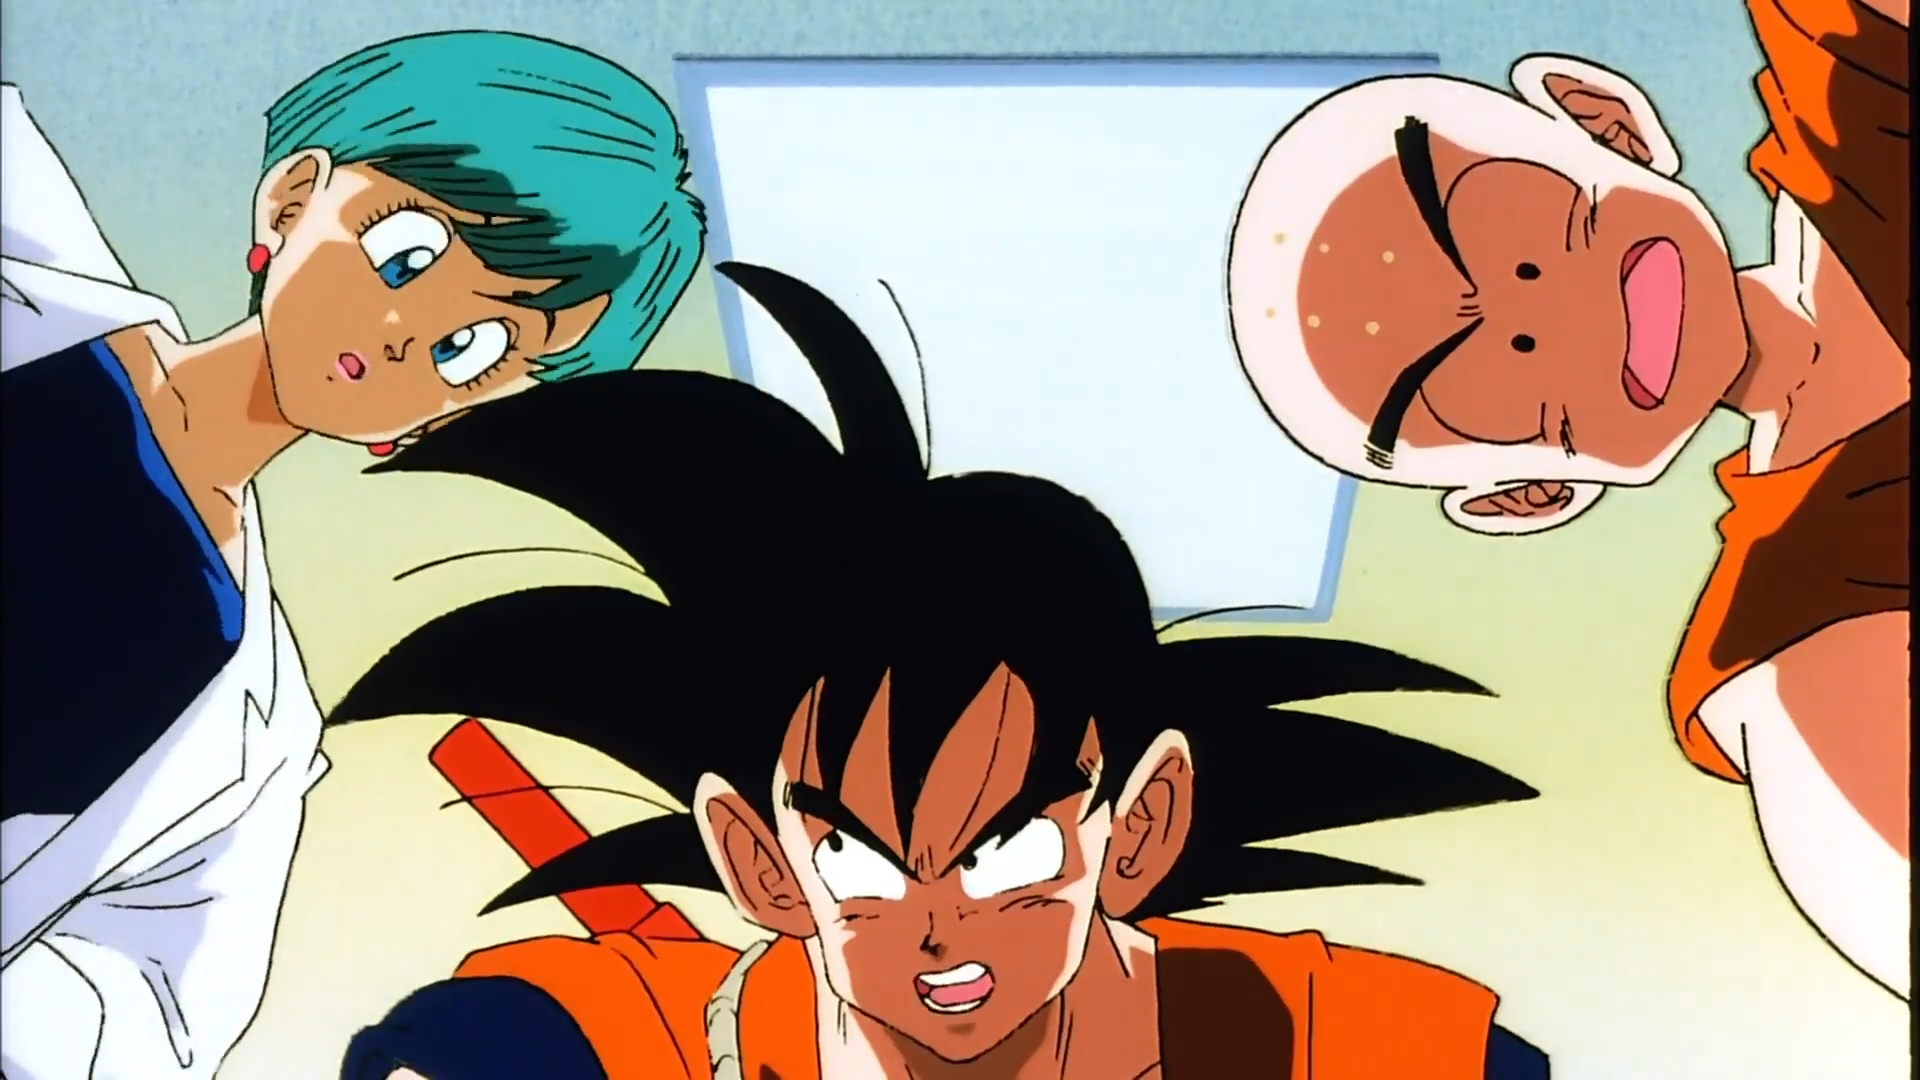 Dragon Ball Z Dead Zone Review 30 Years Later A Look Back On Dragon By Sam Leach Medium Not to mention, it carries some health benefits, too. dragon ball z dead zone review 30